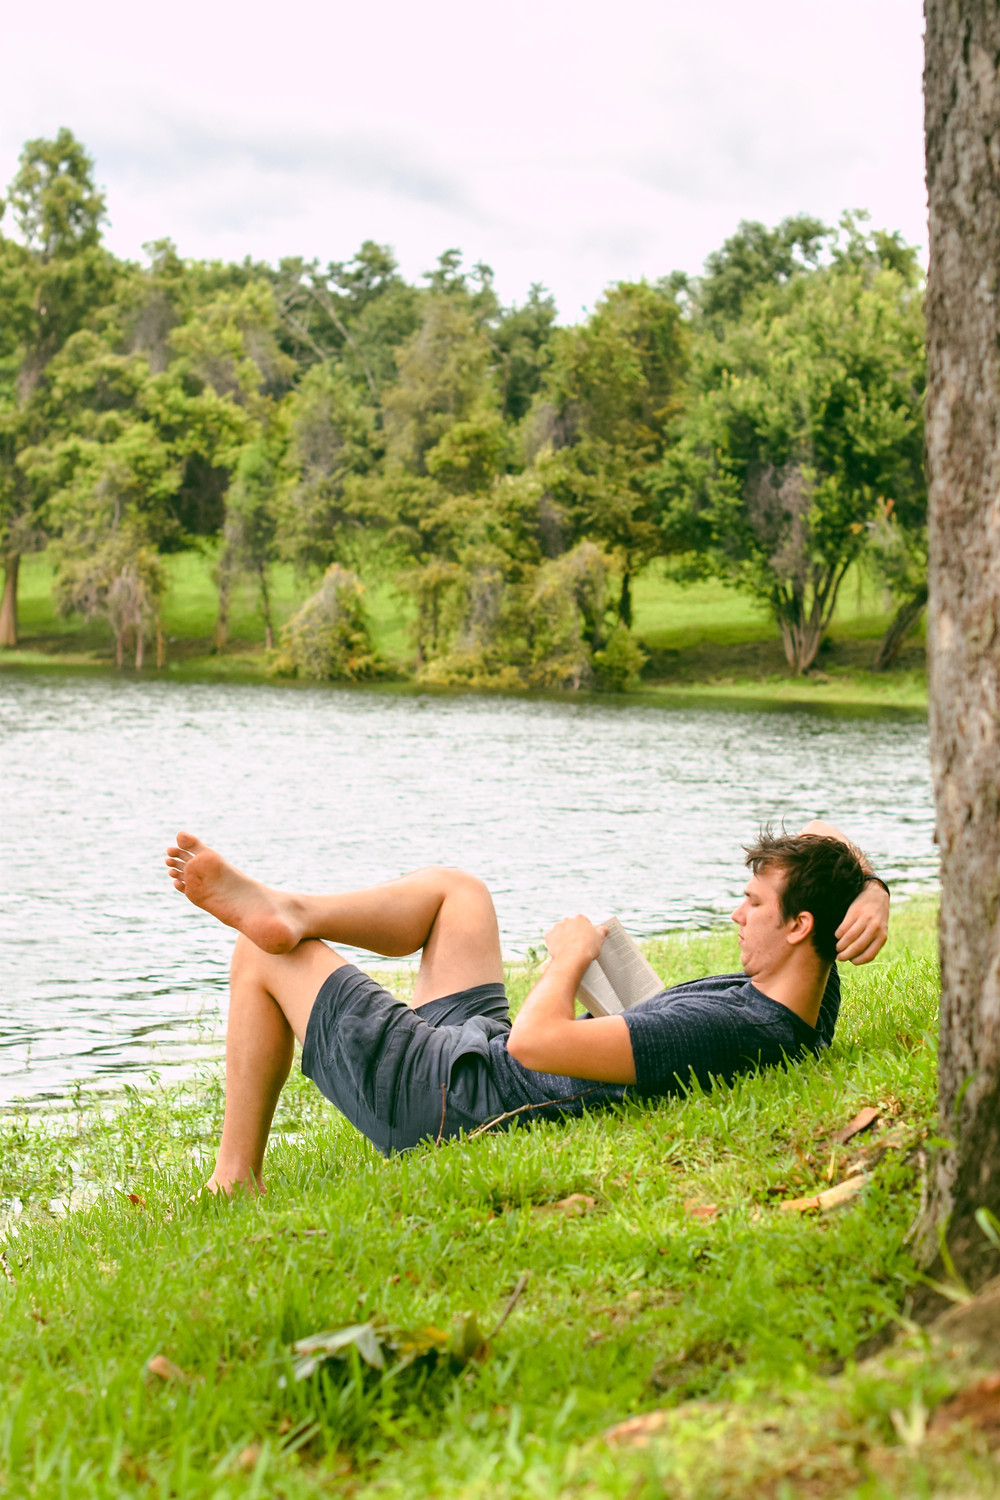 Caucasian man reading and lounging on the grass in a natural setting